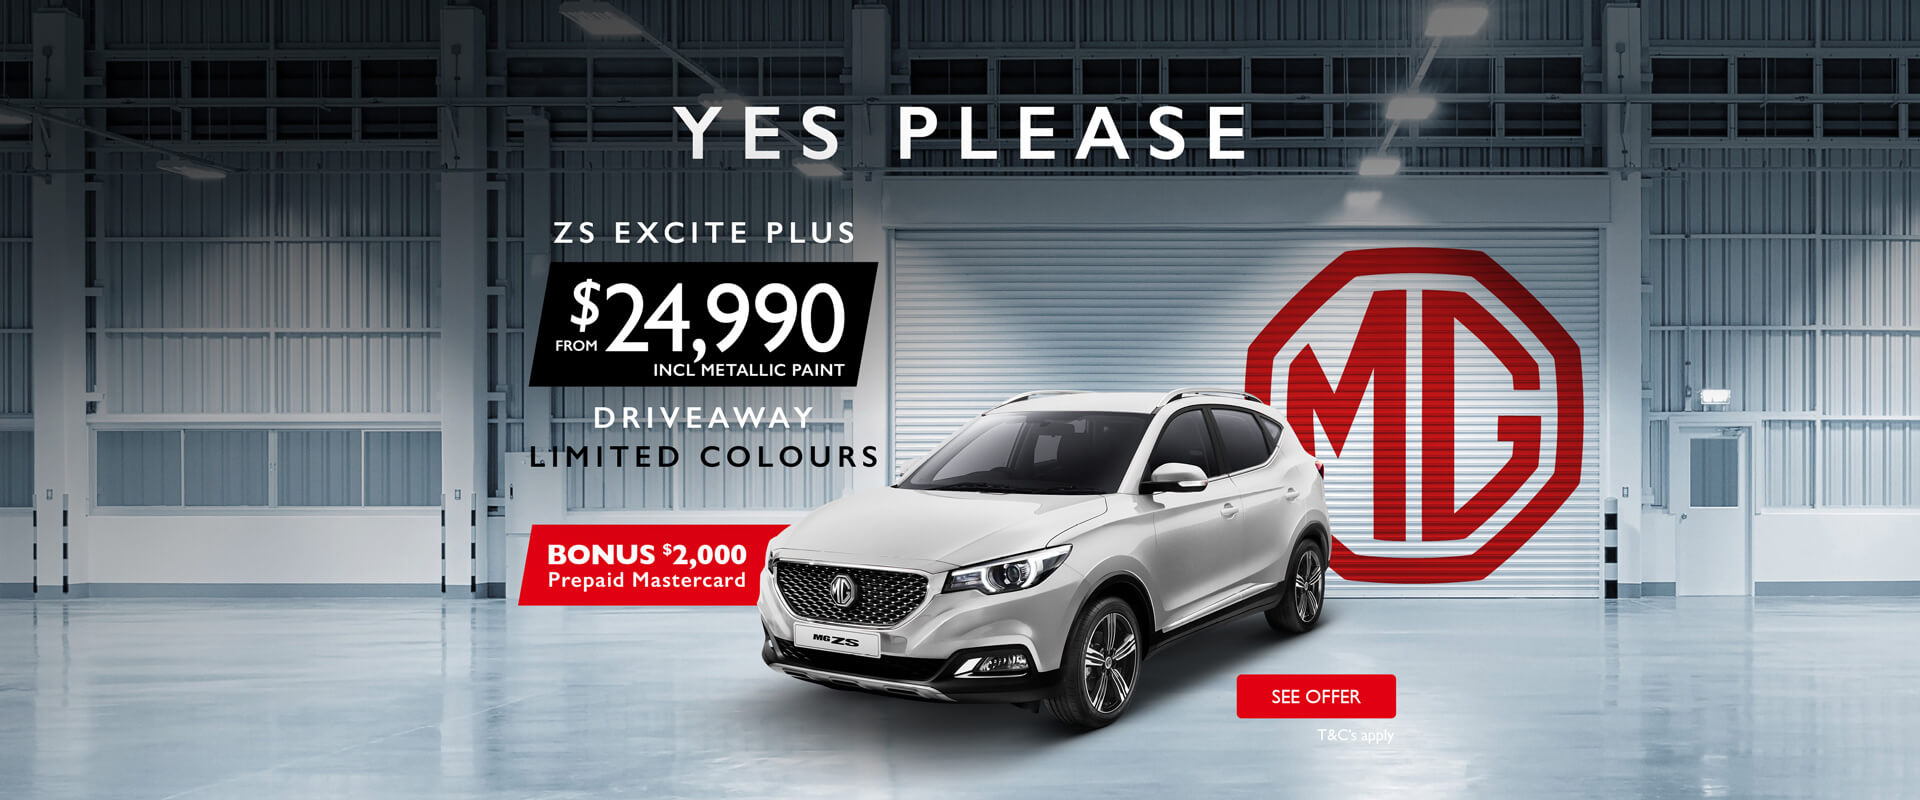 MG ZS Excite Plus - Yes Please